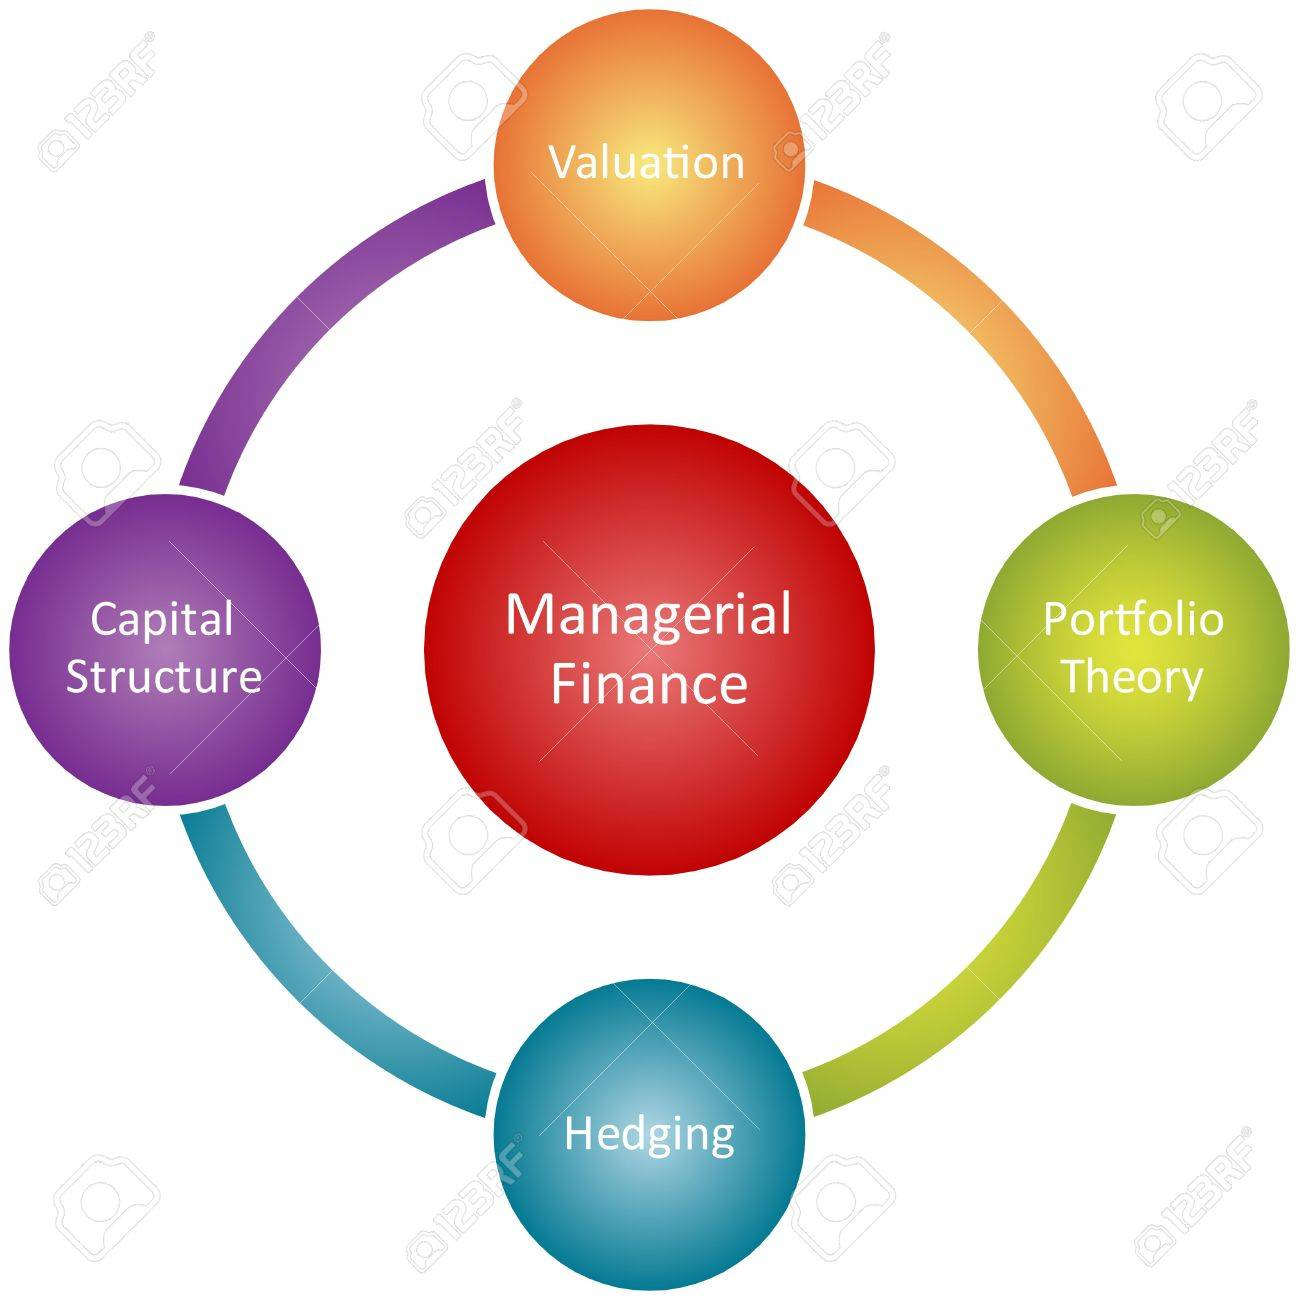 Managerial finance management business strategy concept diagram illustration Stock Photo - 6705378